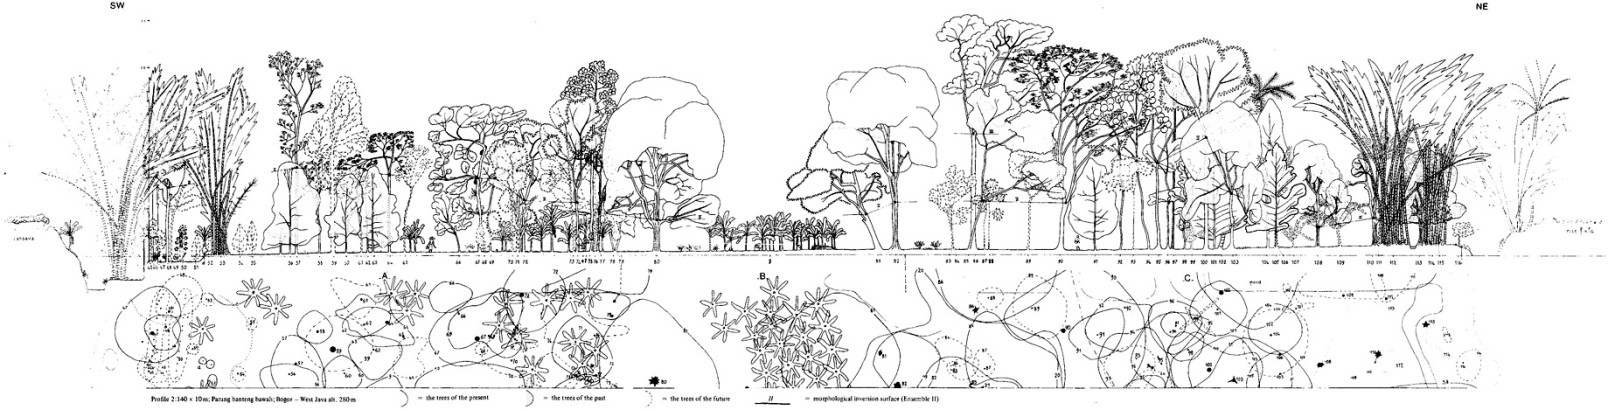 Tropical forest architectural analysis as applied to agroforestry in the humid tropics The example of traditional village-agroforestry in West Java